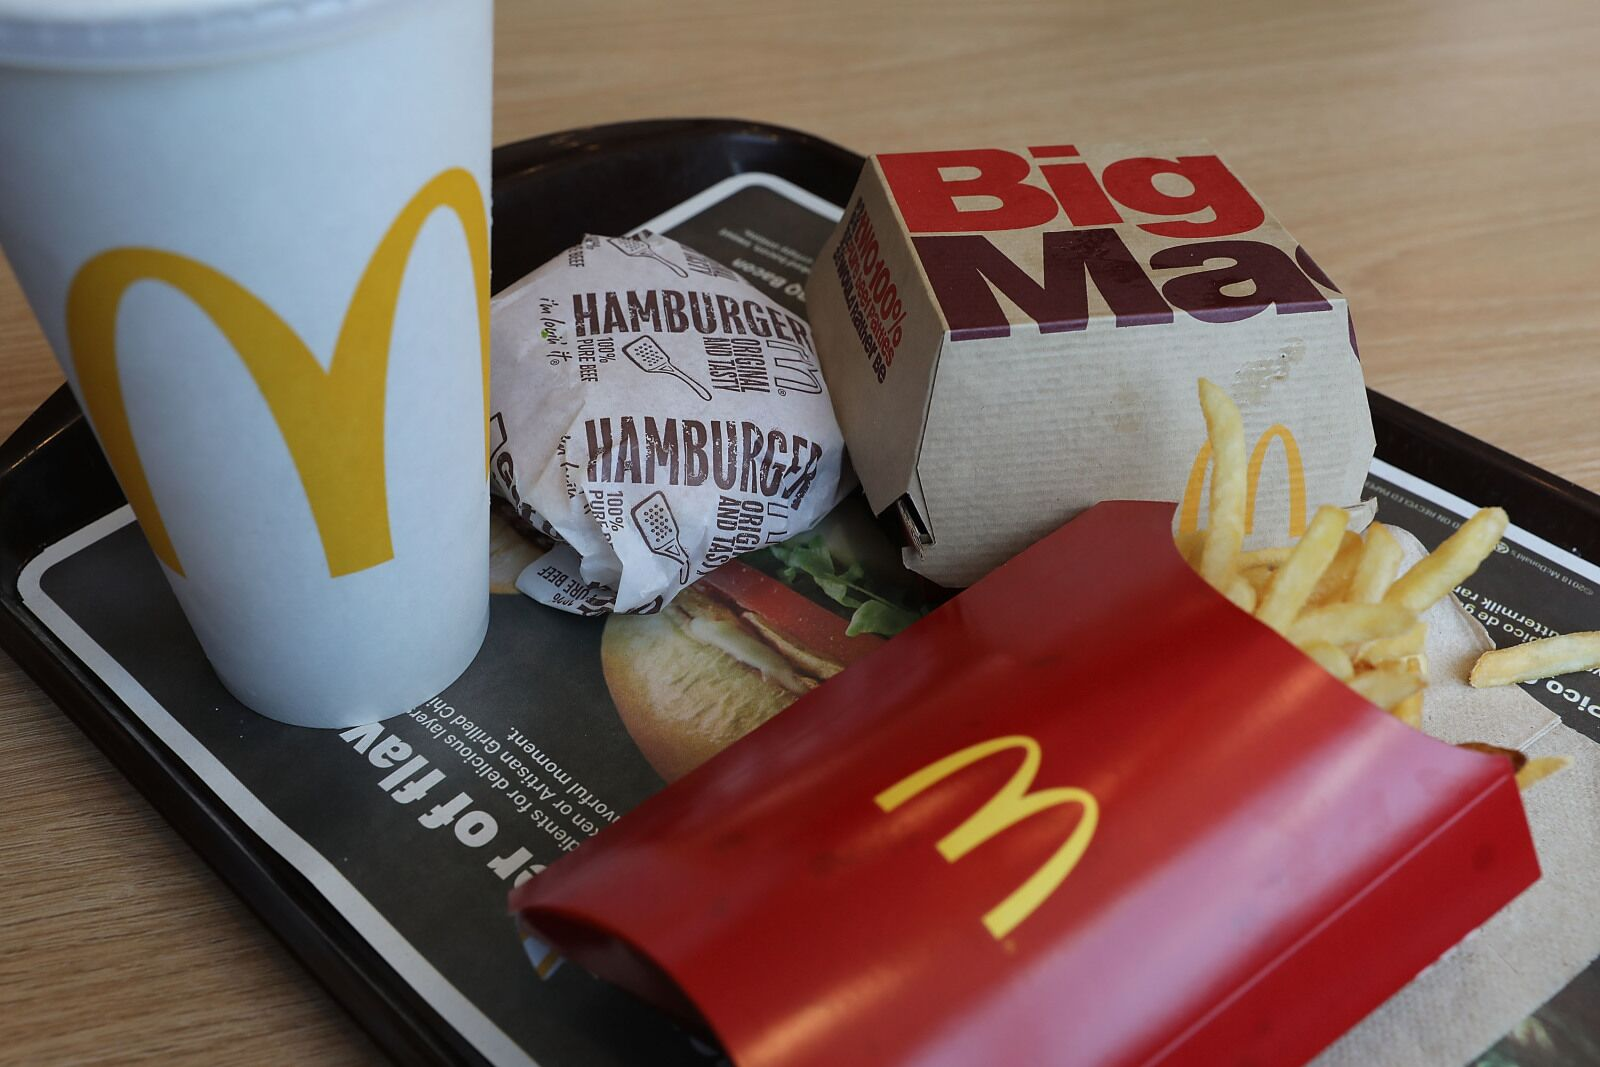 A McDonald's dessert hack has people going crazy, in a good way